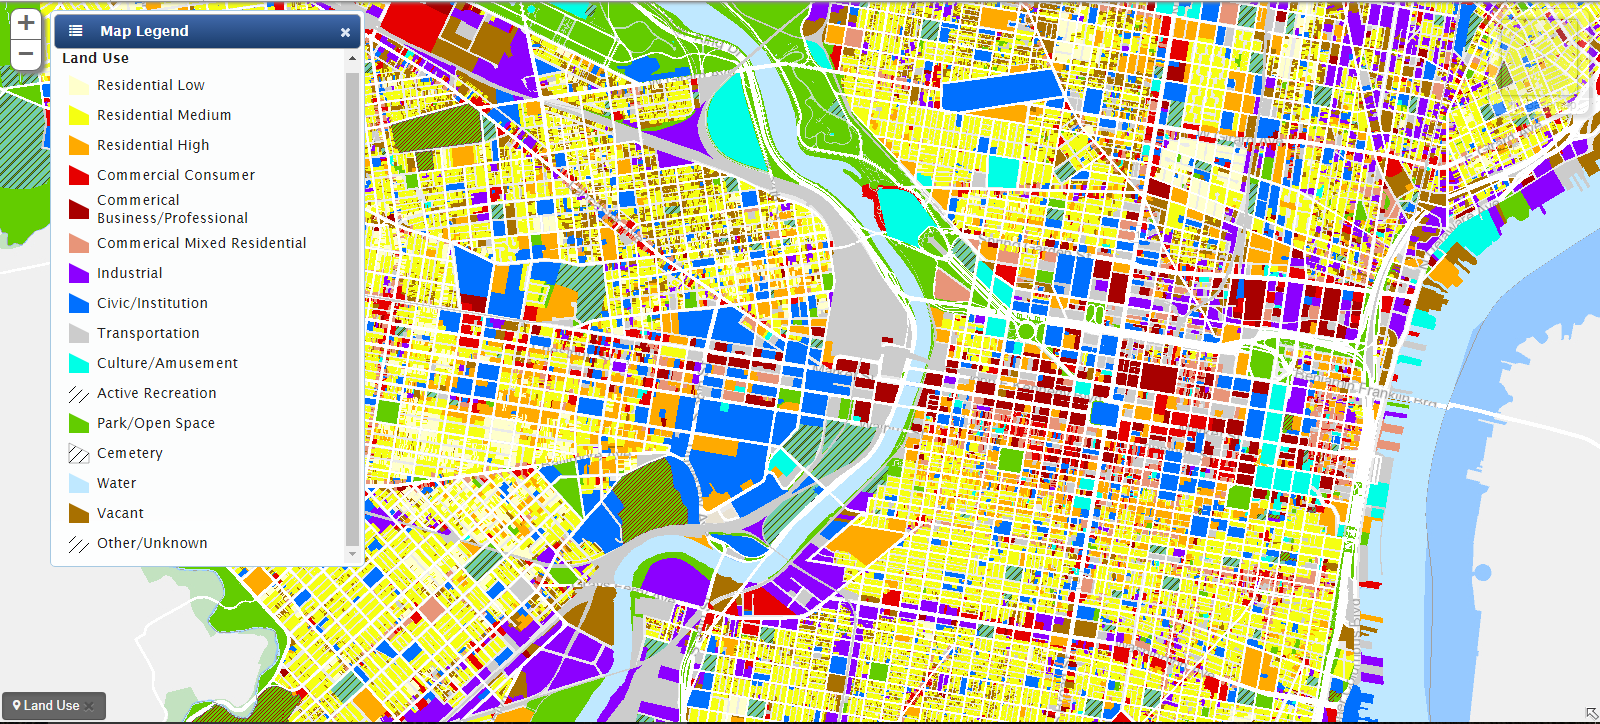 Land Use Map Land Use Map | Encyclopedia of Greater Philadelphia